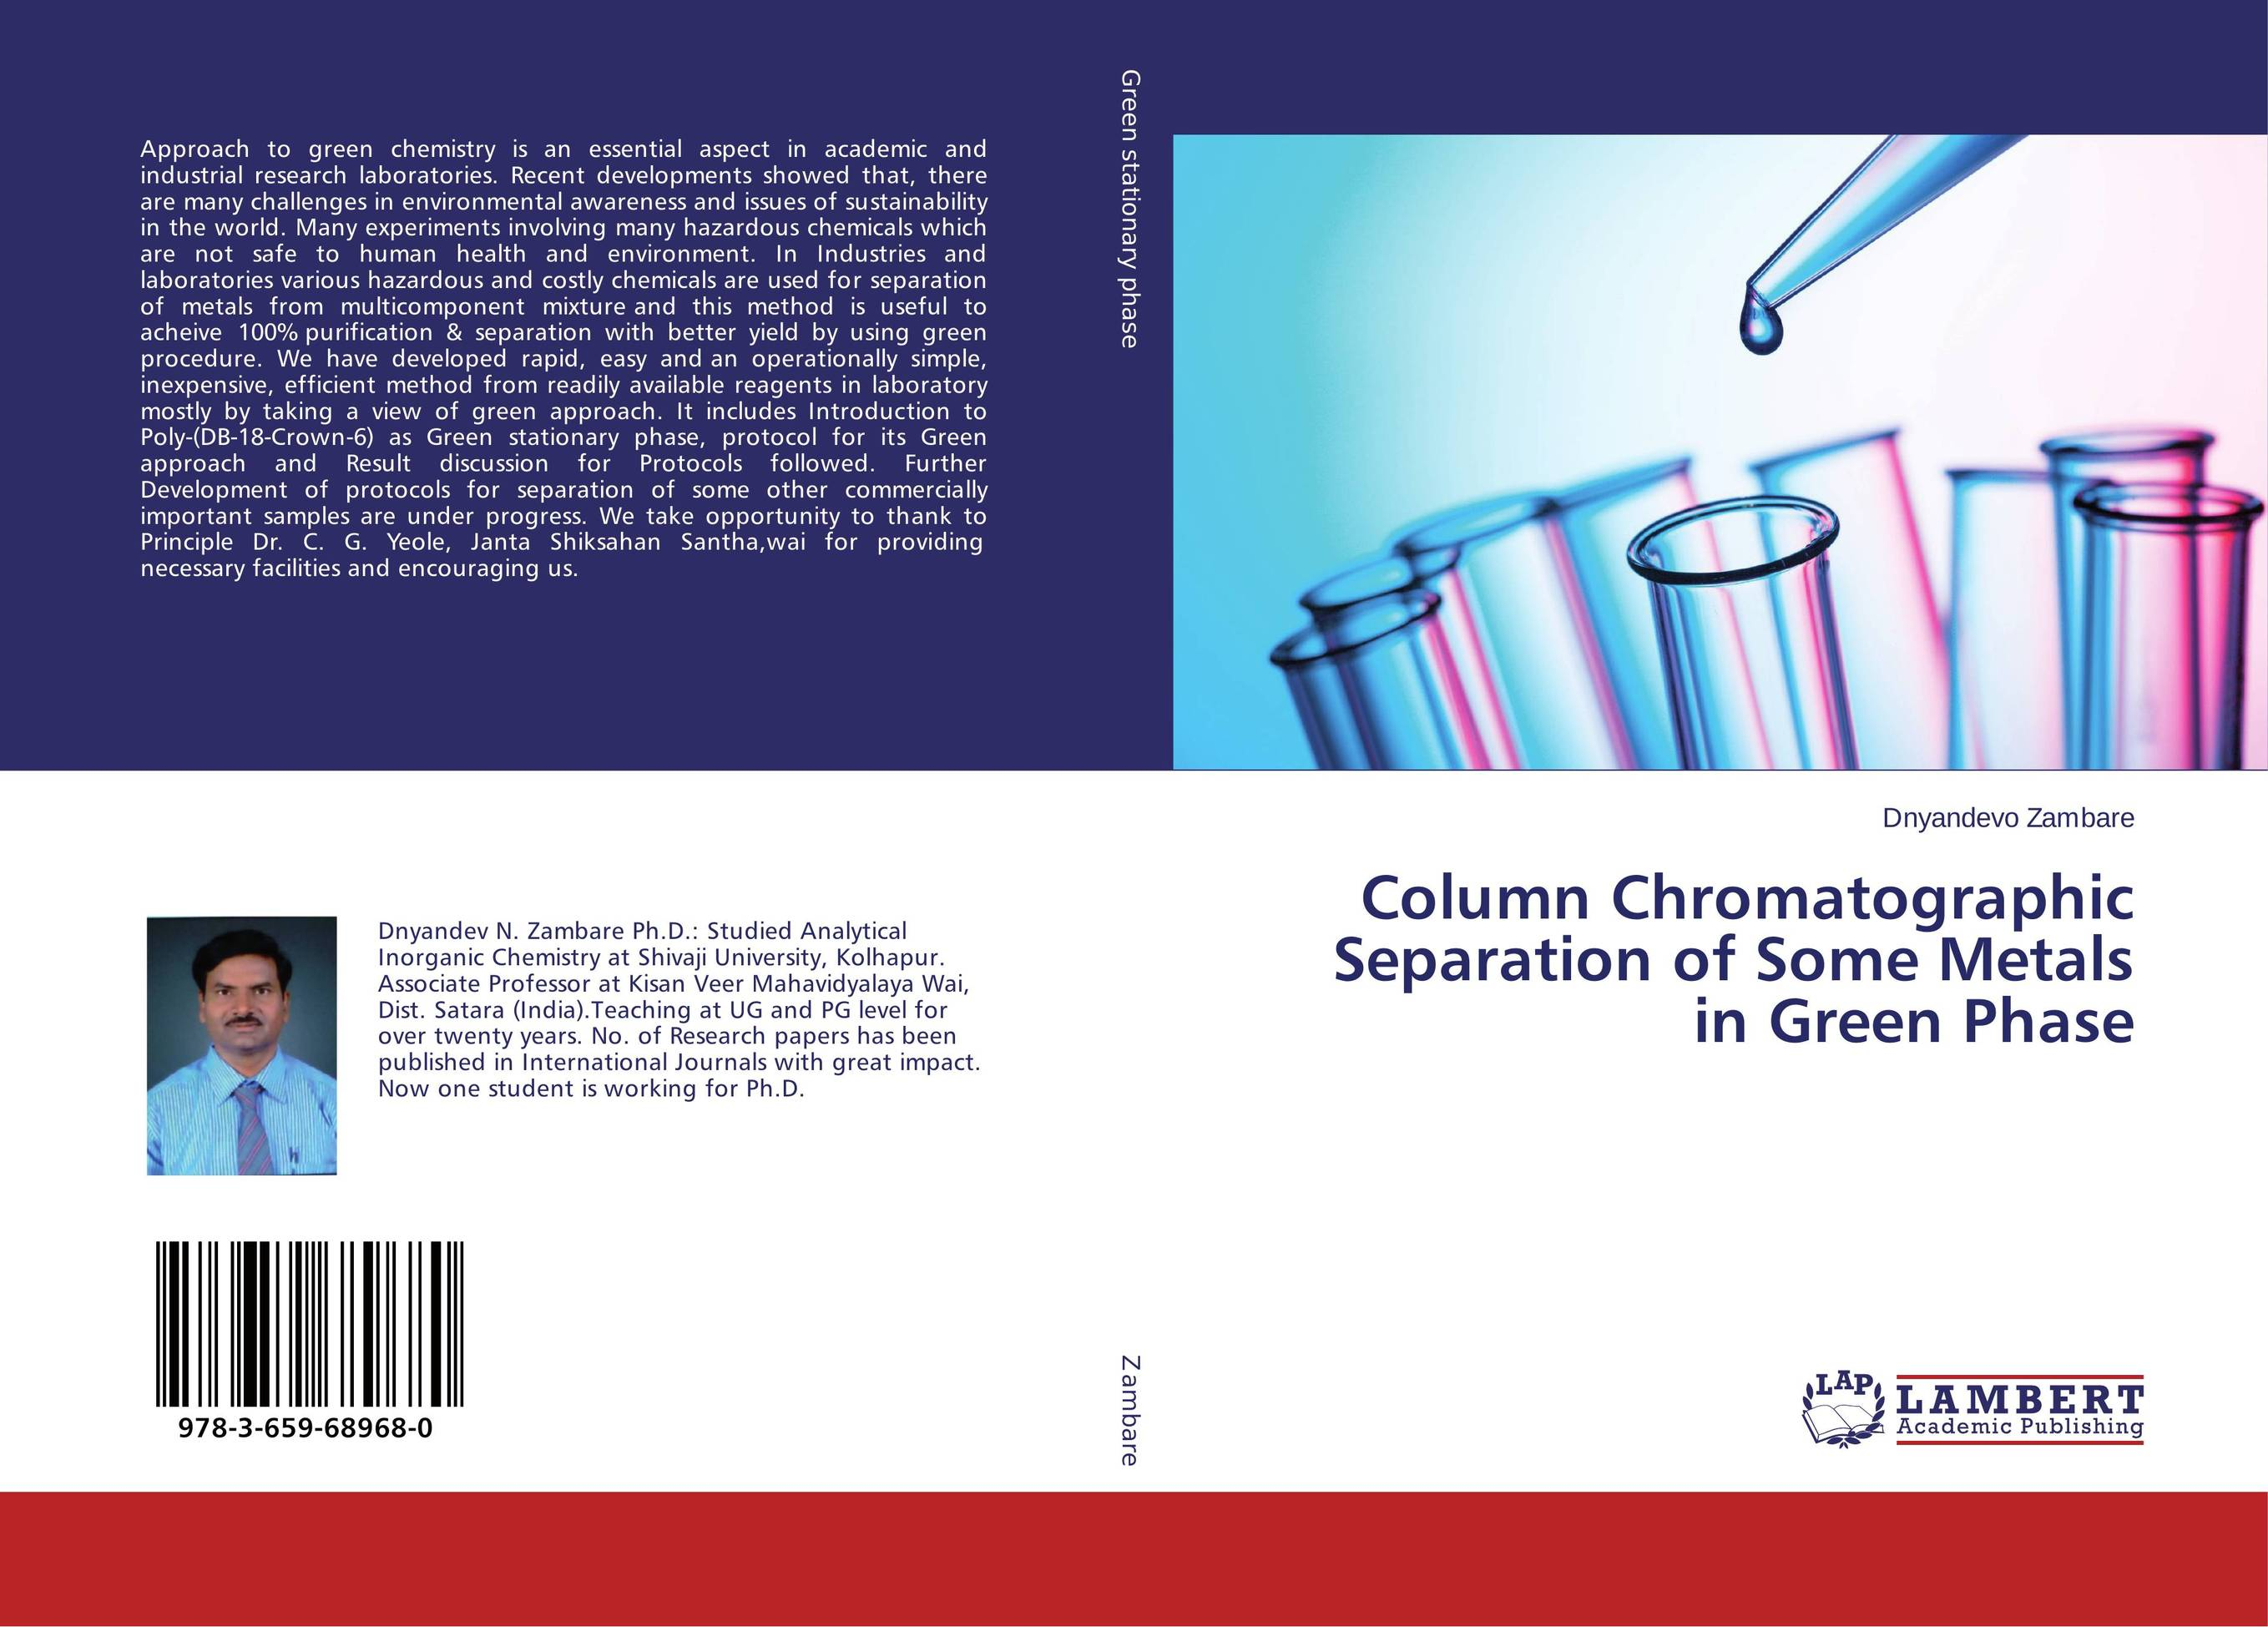 Column Chromatographic Separation of Some Metals in Green Phase